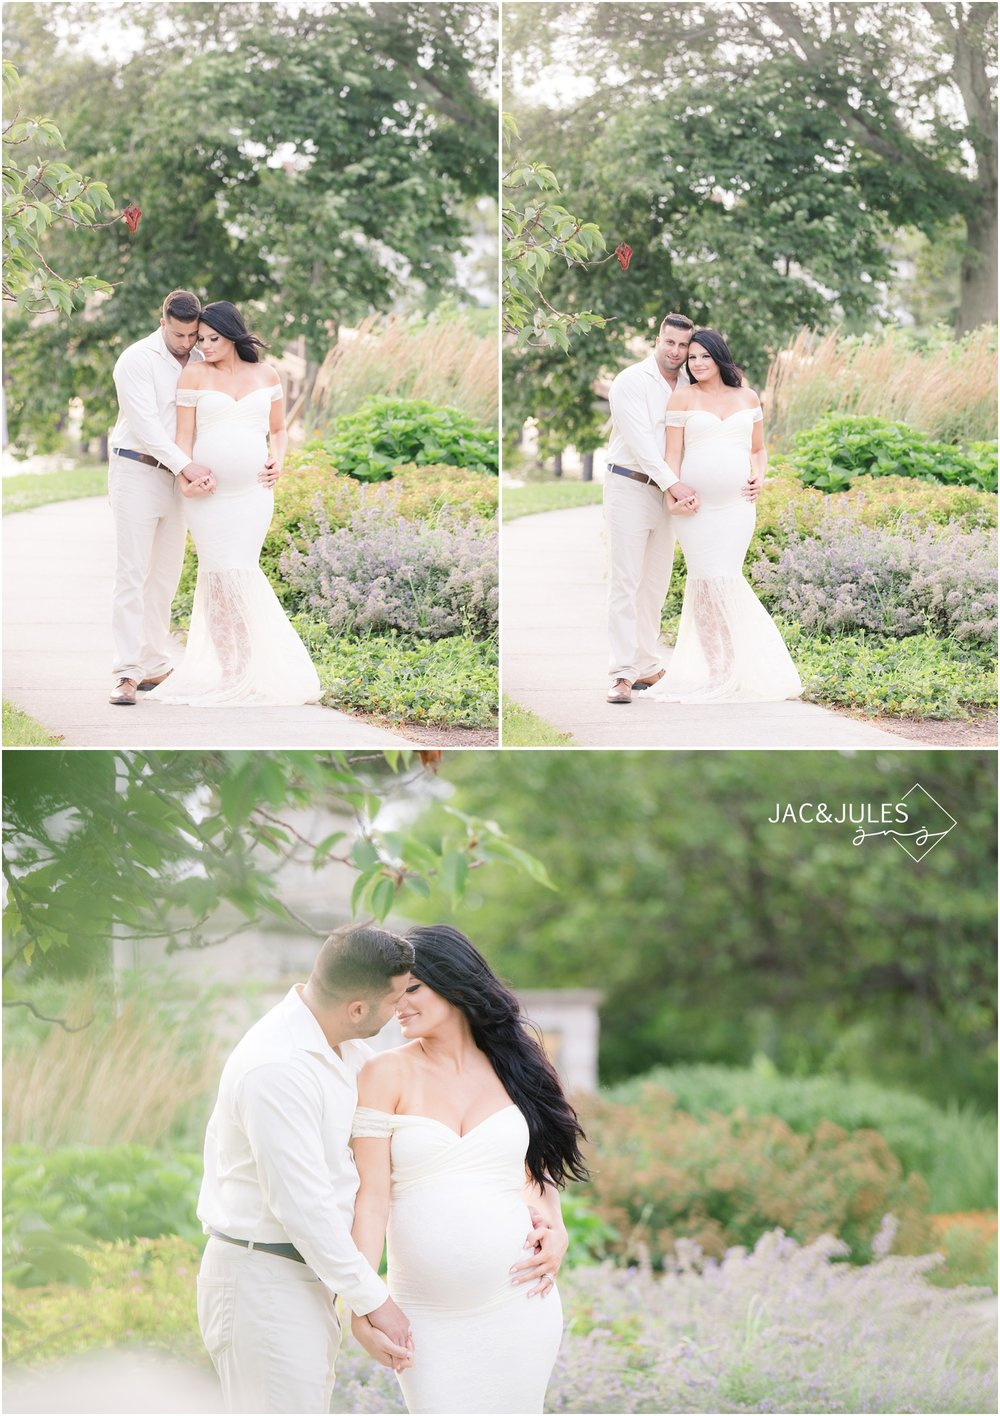 Dreamy maternity photos with expectant mom in white lace maternity gown.